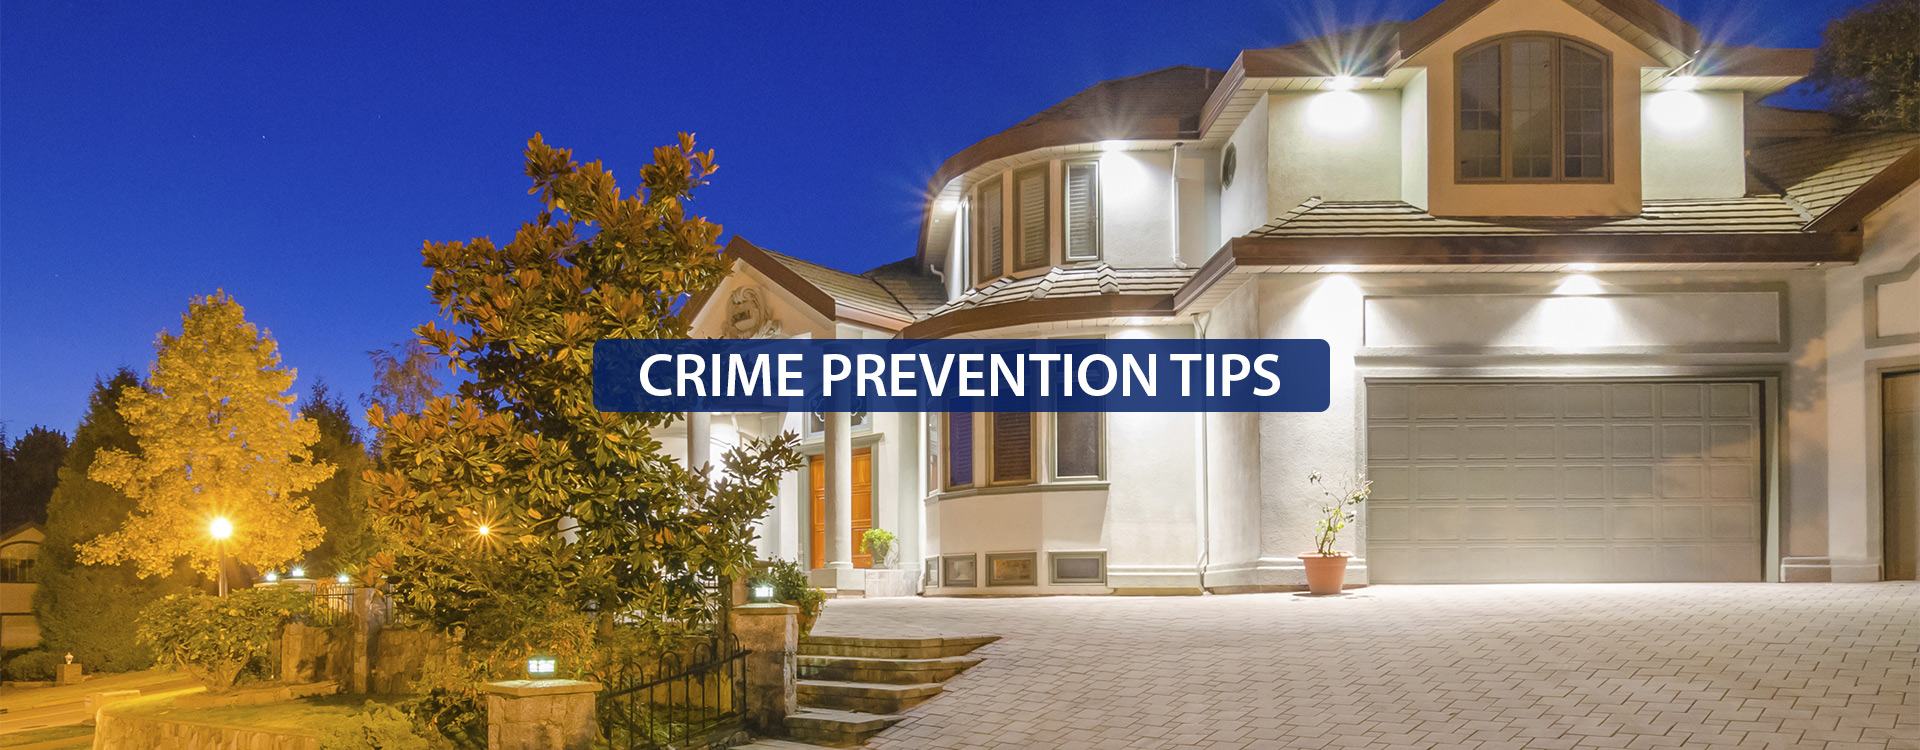 Crime prevention tips